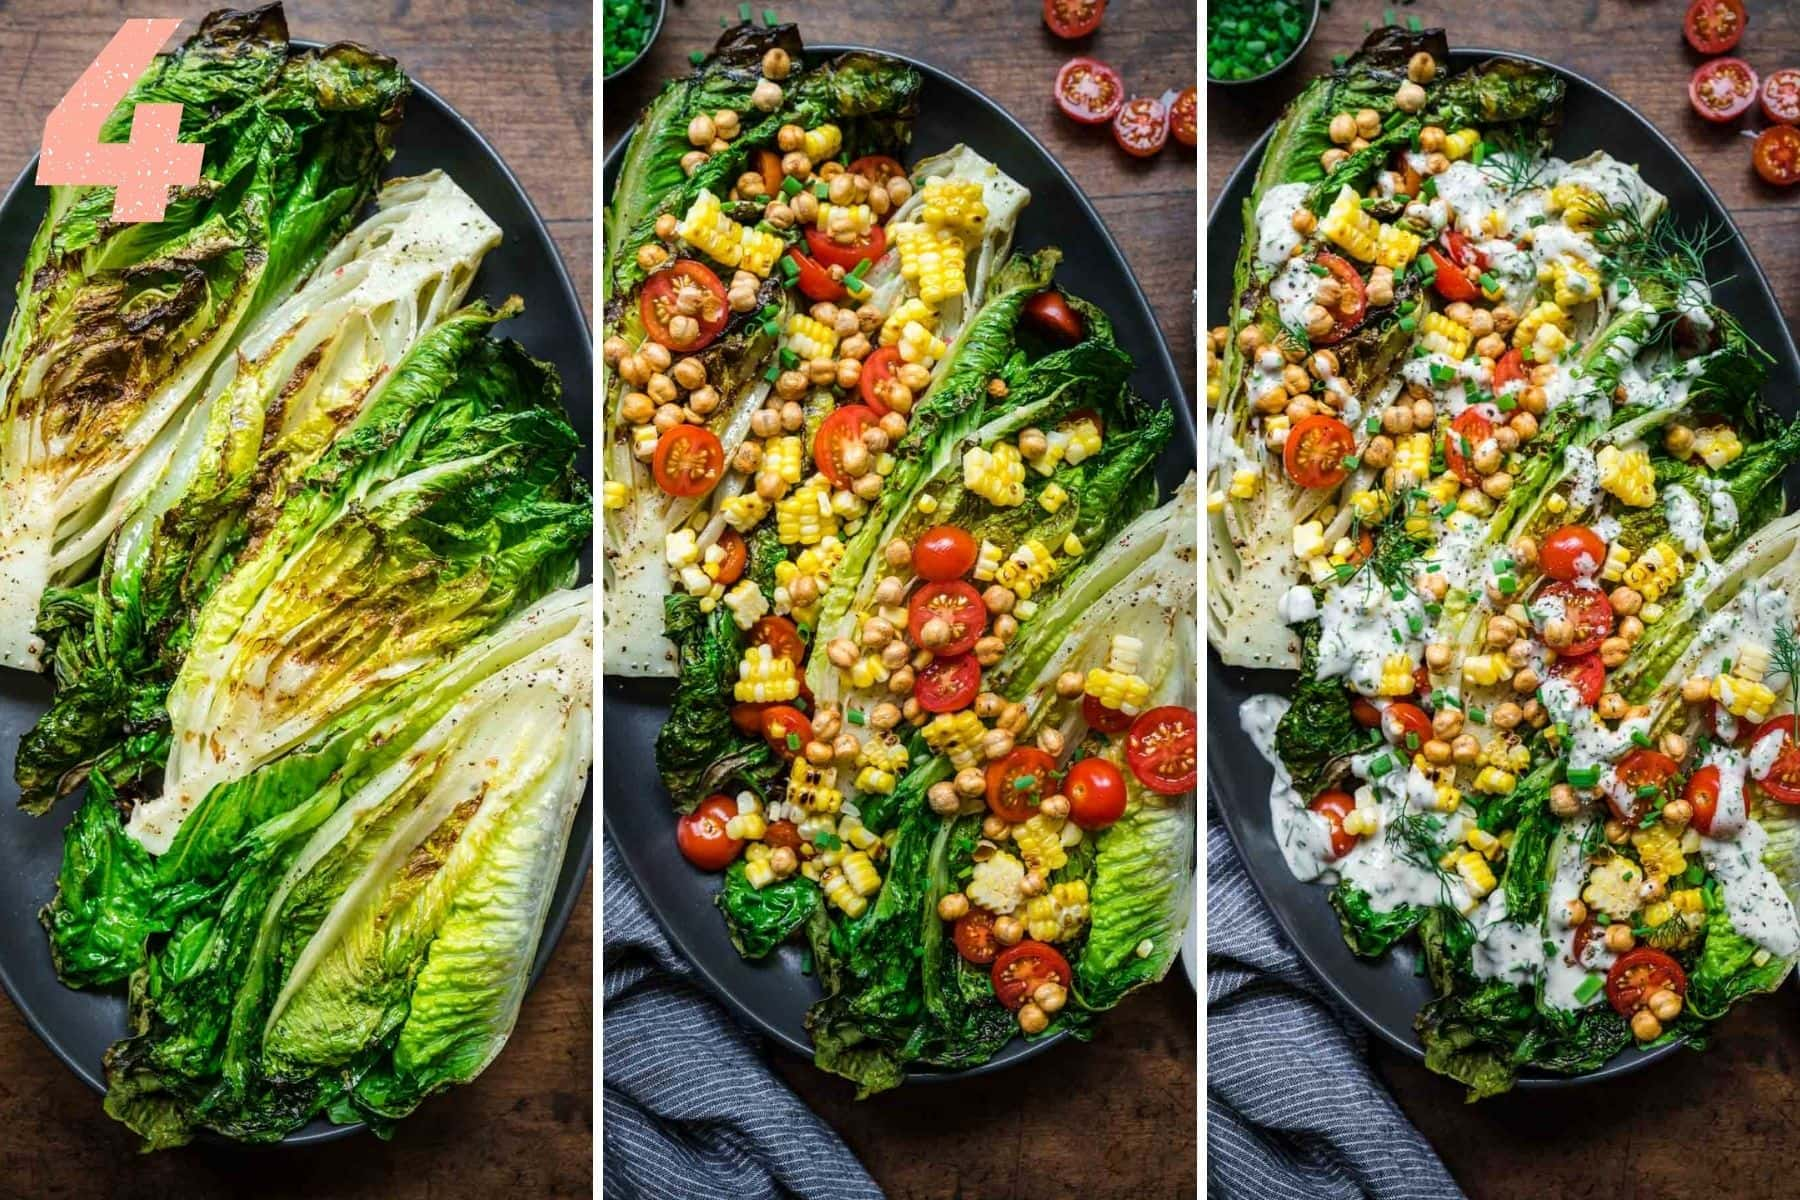 Overhead view of grilled romaine leaves plain, then with toppings, then with ranch dressing added.